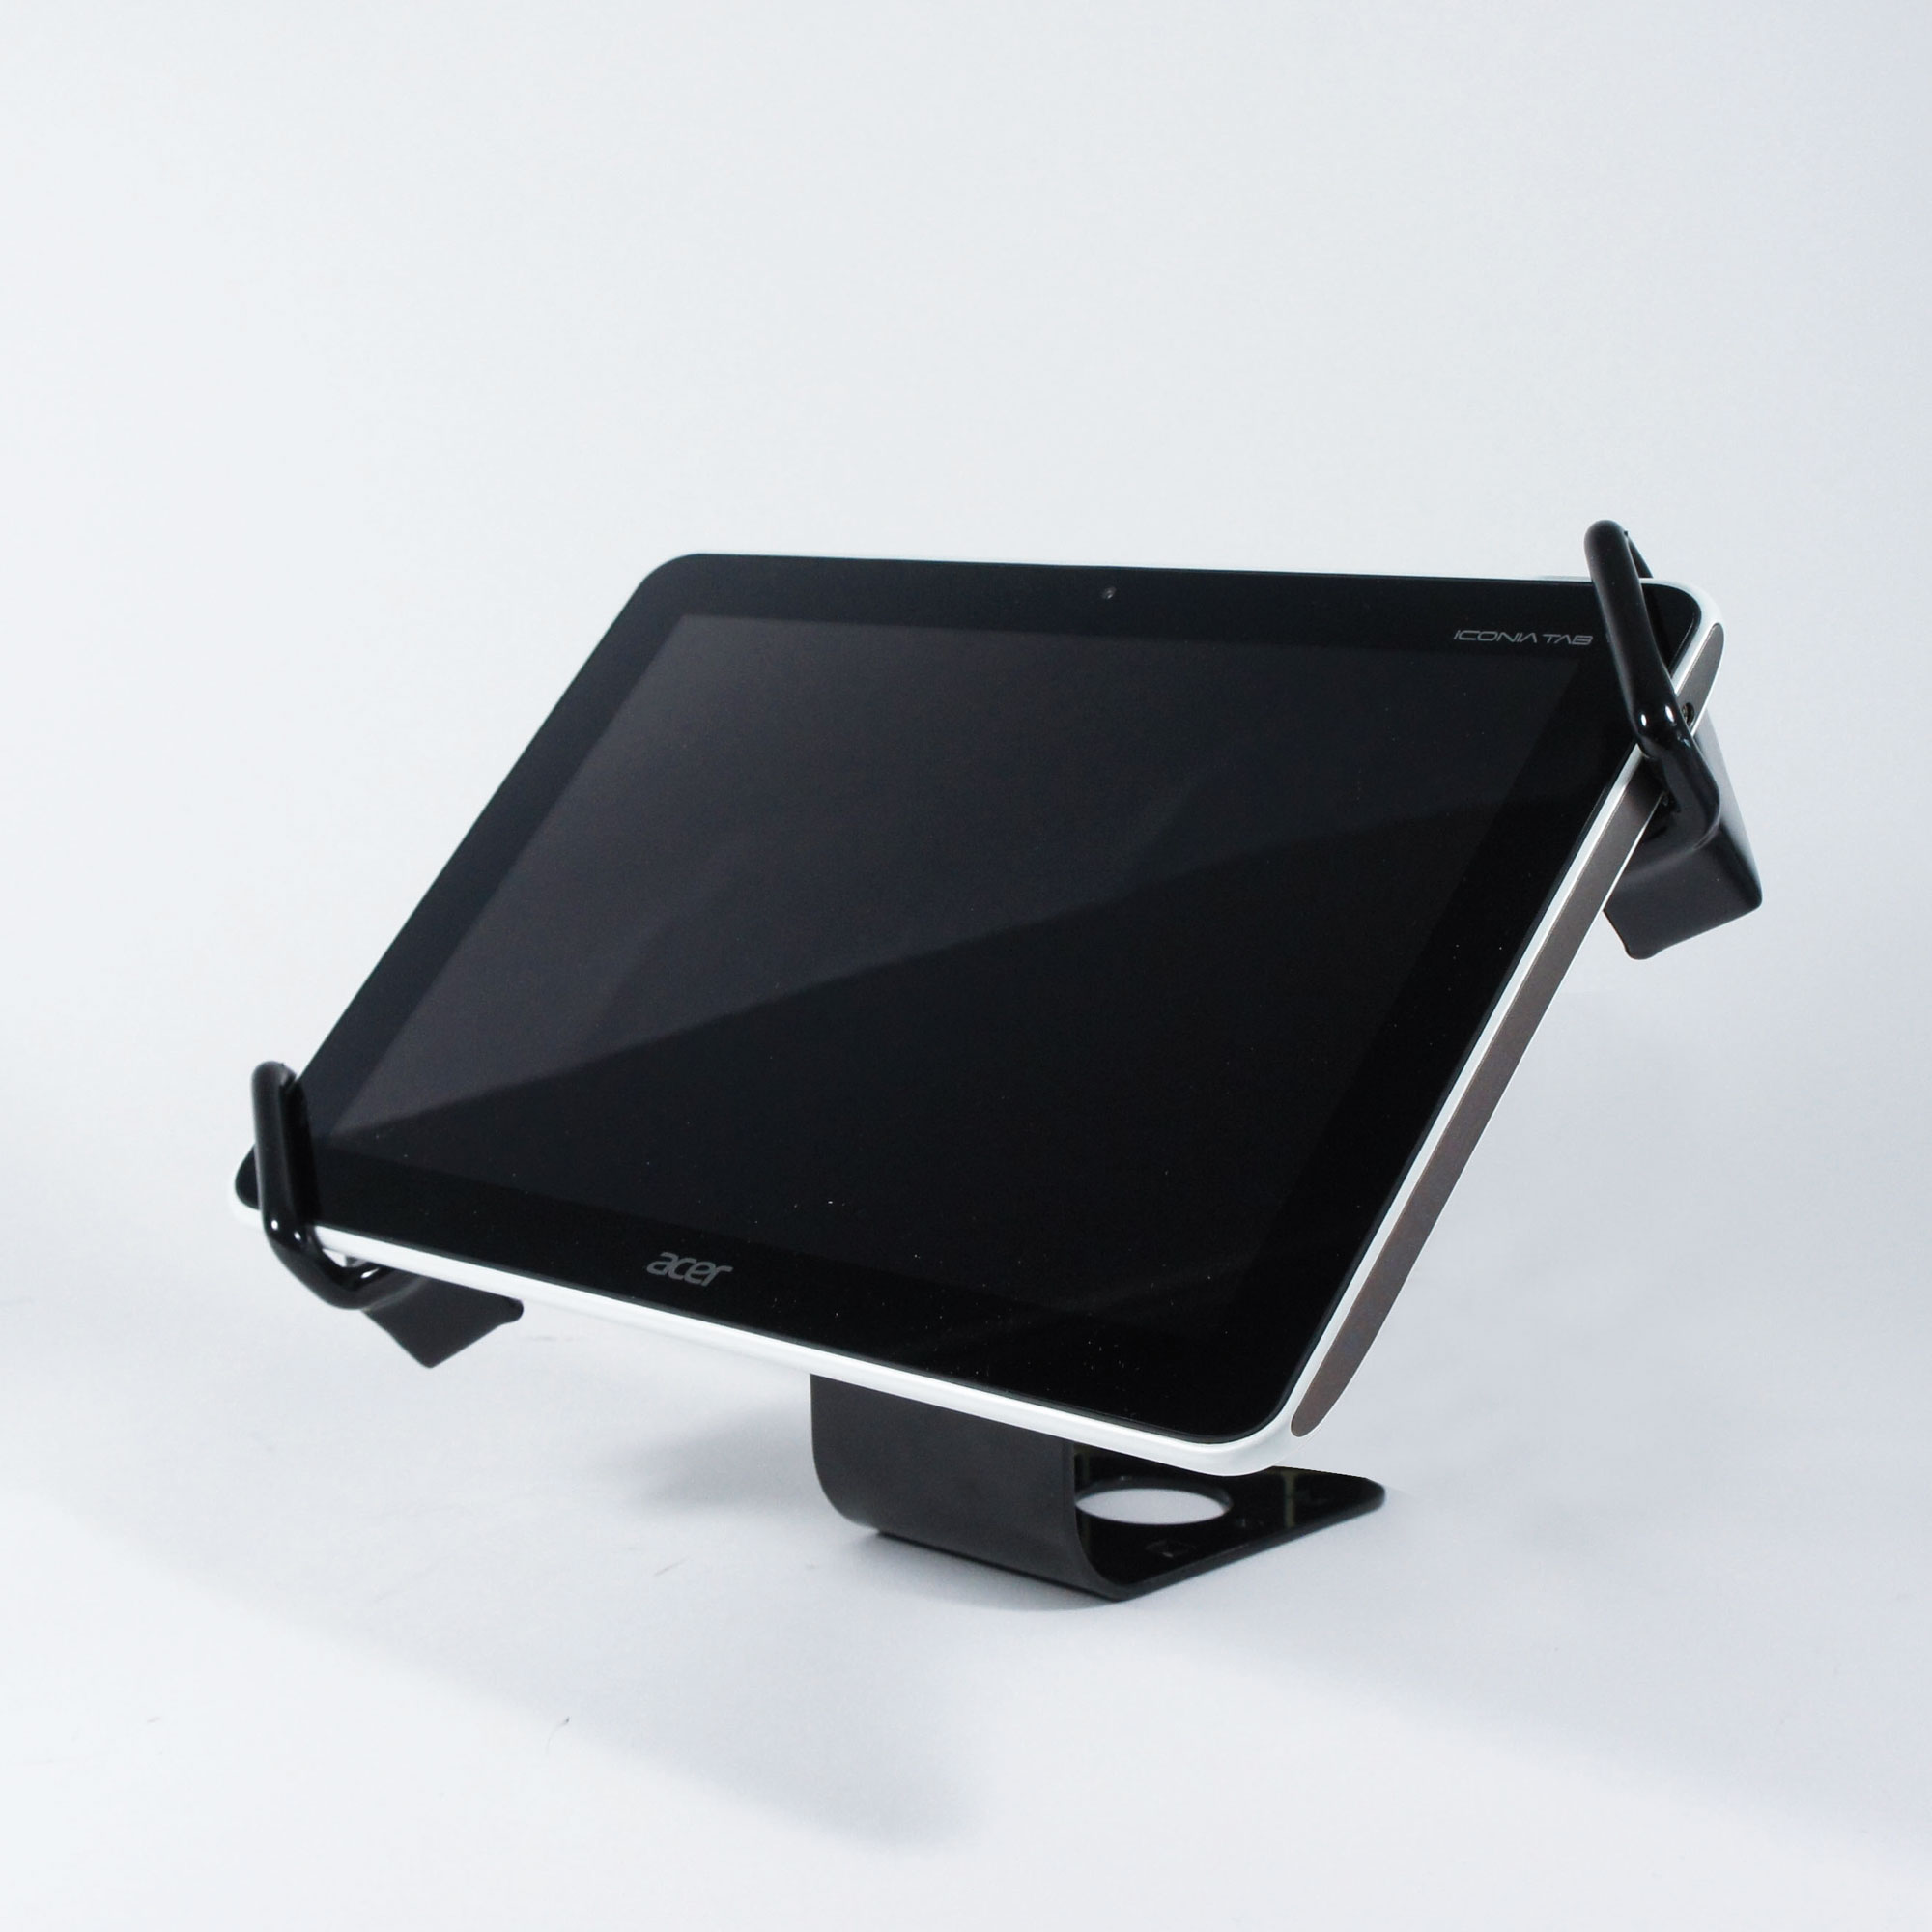 Security stand | Mechanical protection for tablet